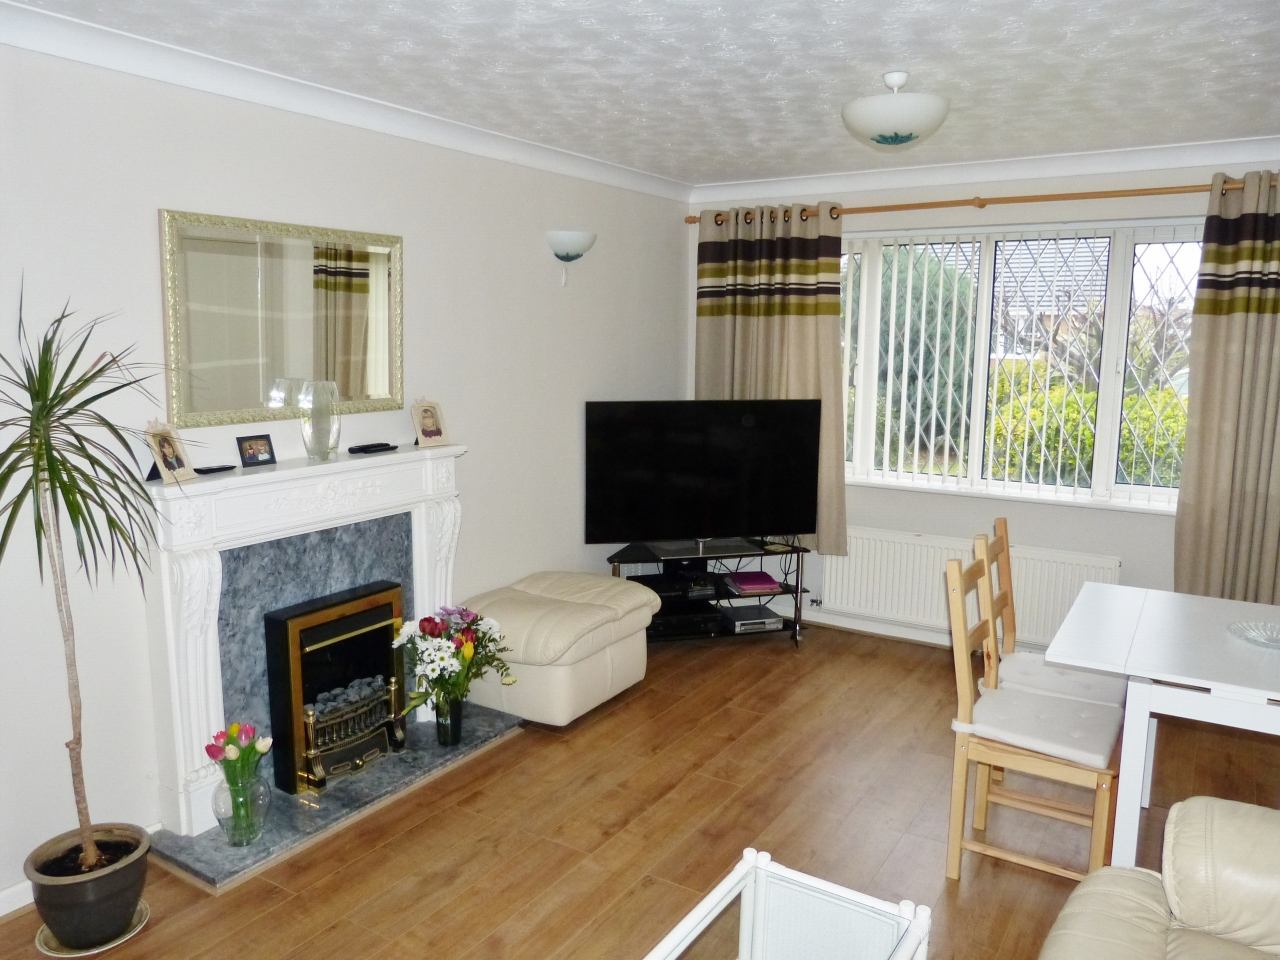 3 bedroom detached bungalow For Sale in Abergele - Photograph 2